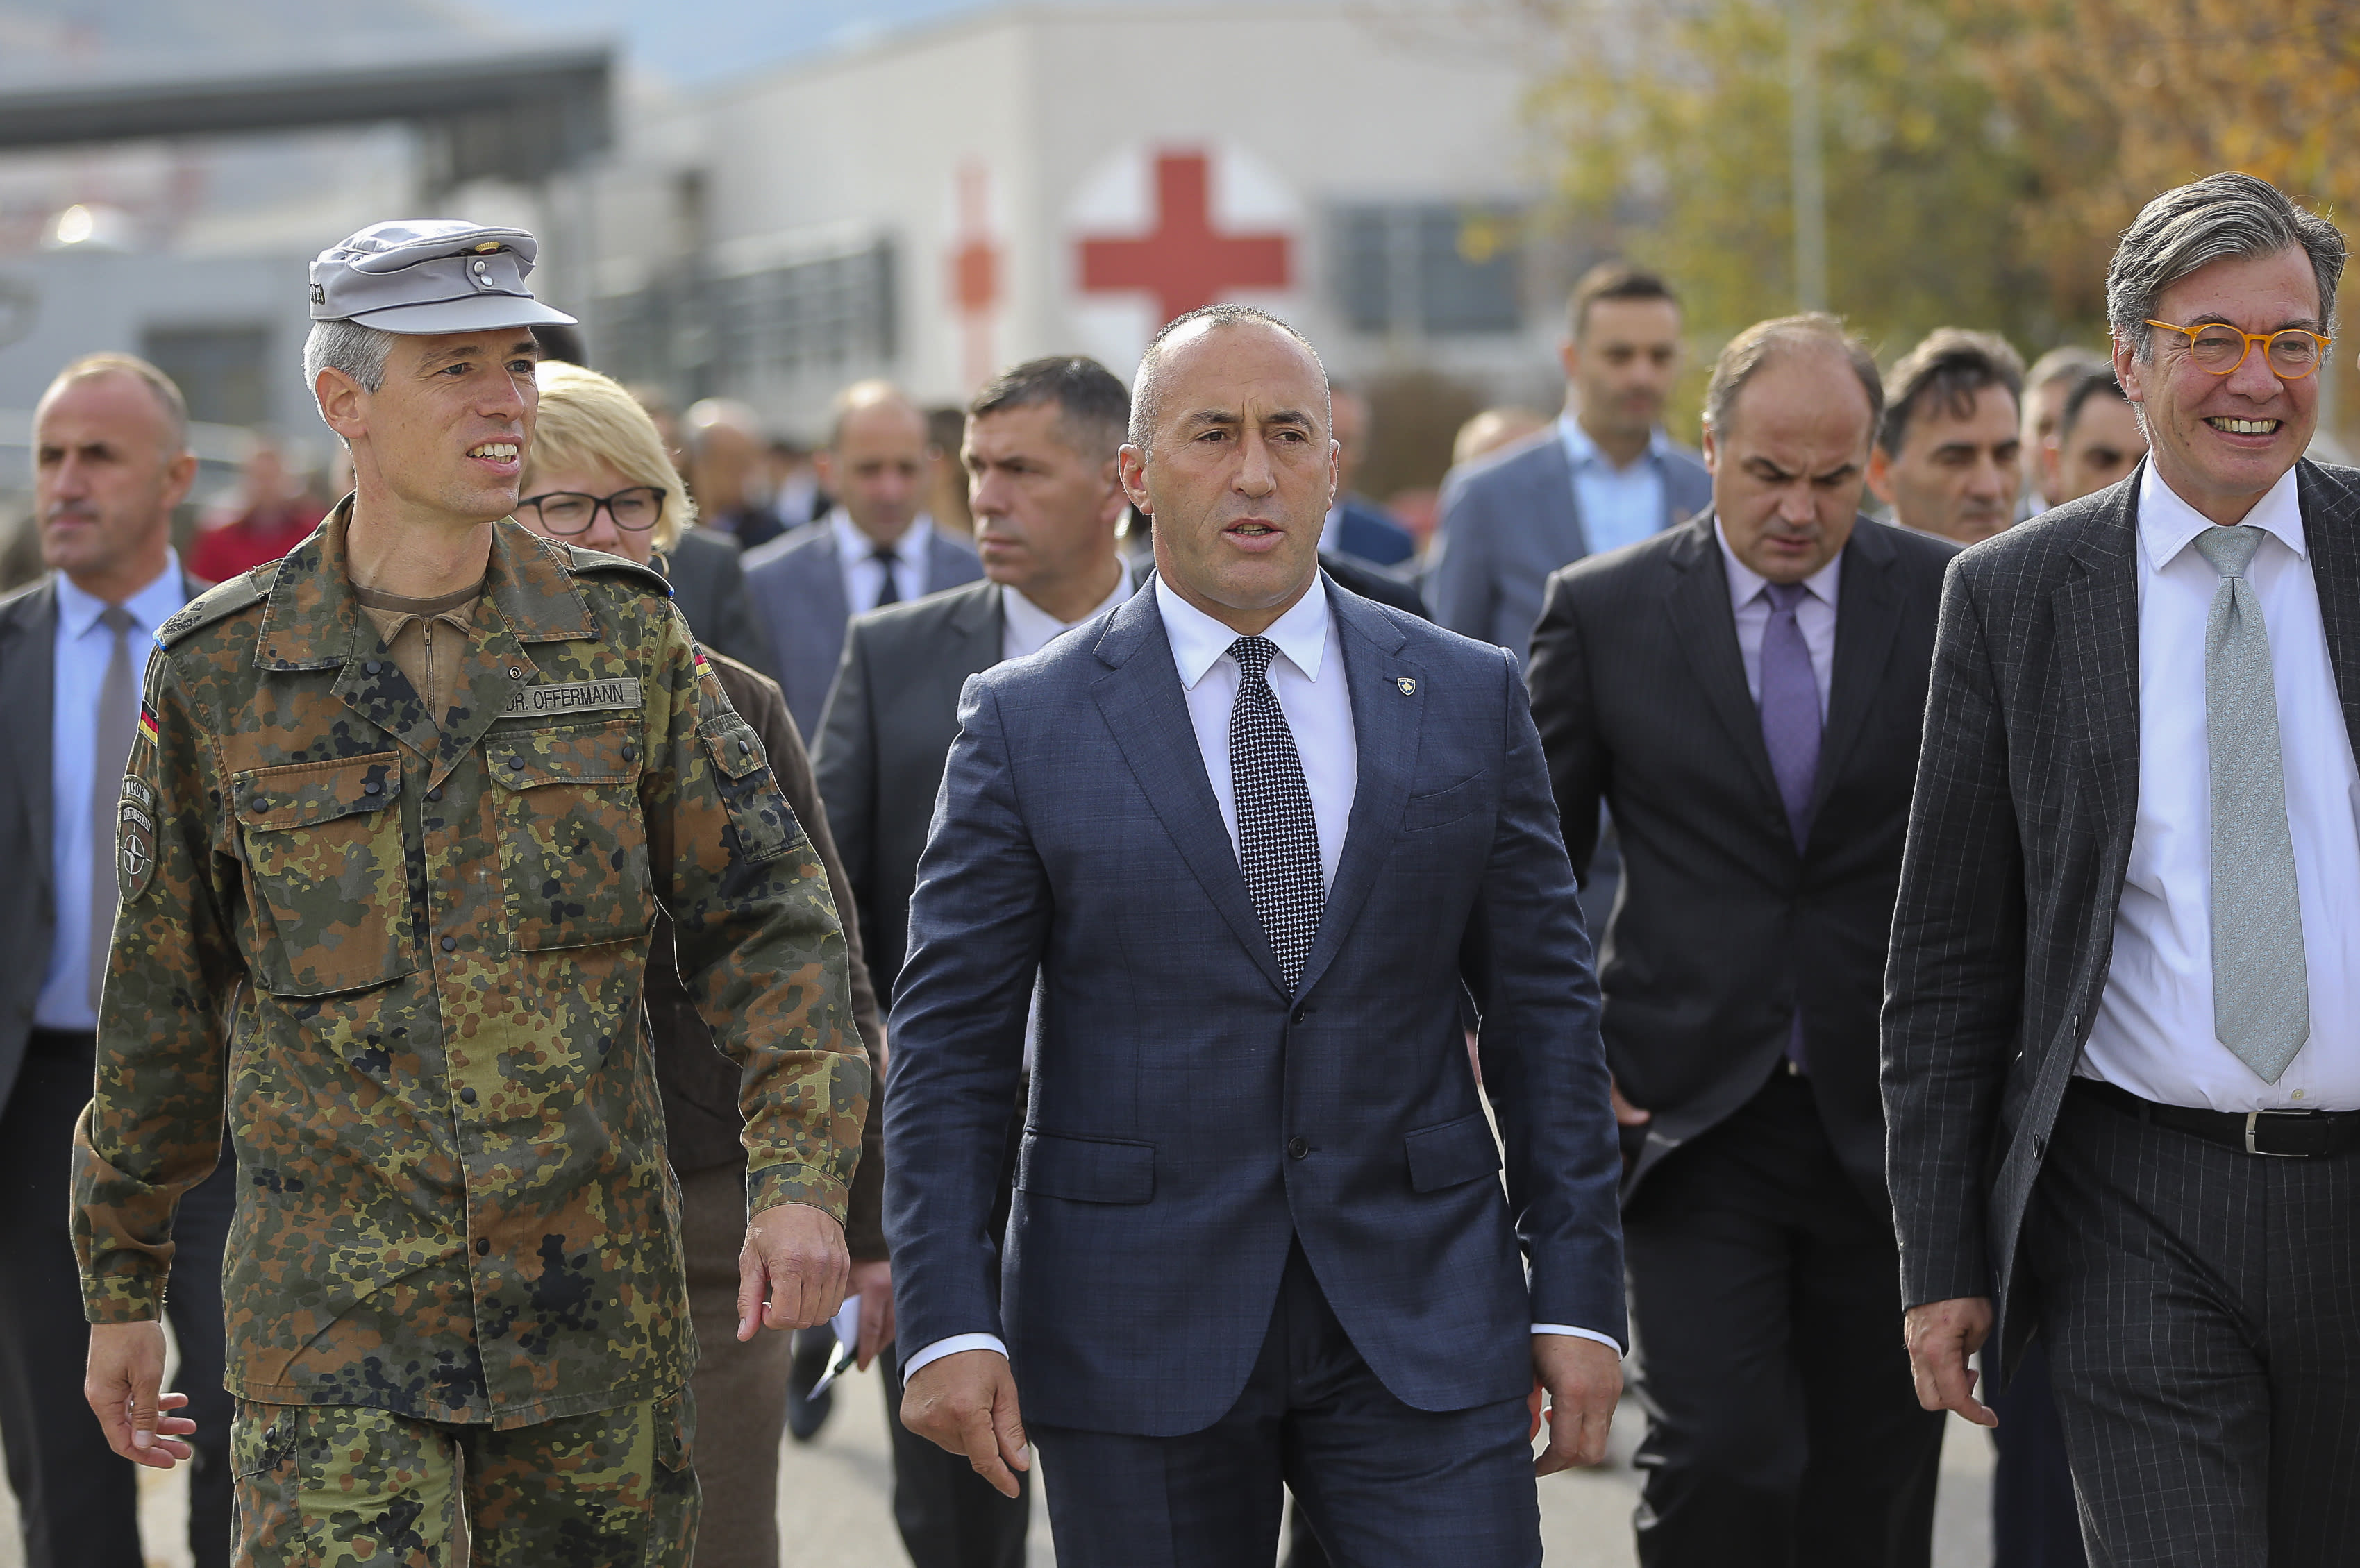 Kosovo heads to snap election as PM Haradinaj steps down